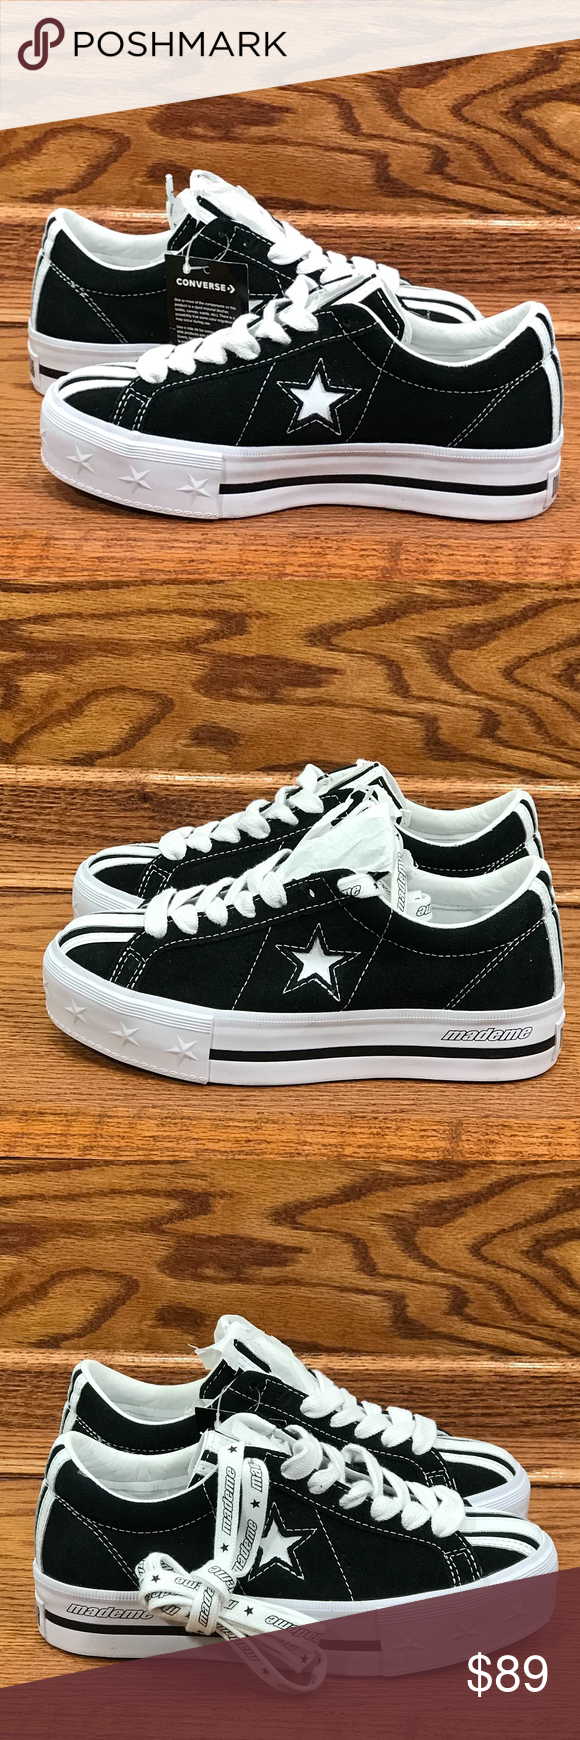 diversified latest designs new products fashionable style Converse One Star Platform MadeMe Black White Converse One ...